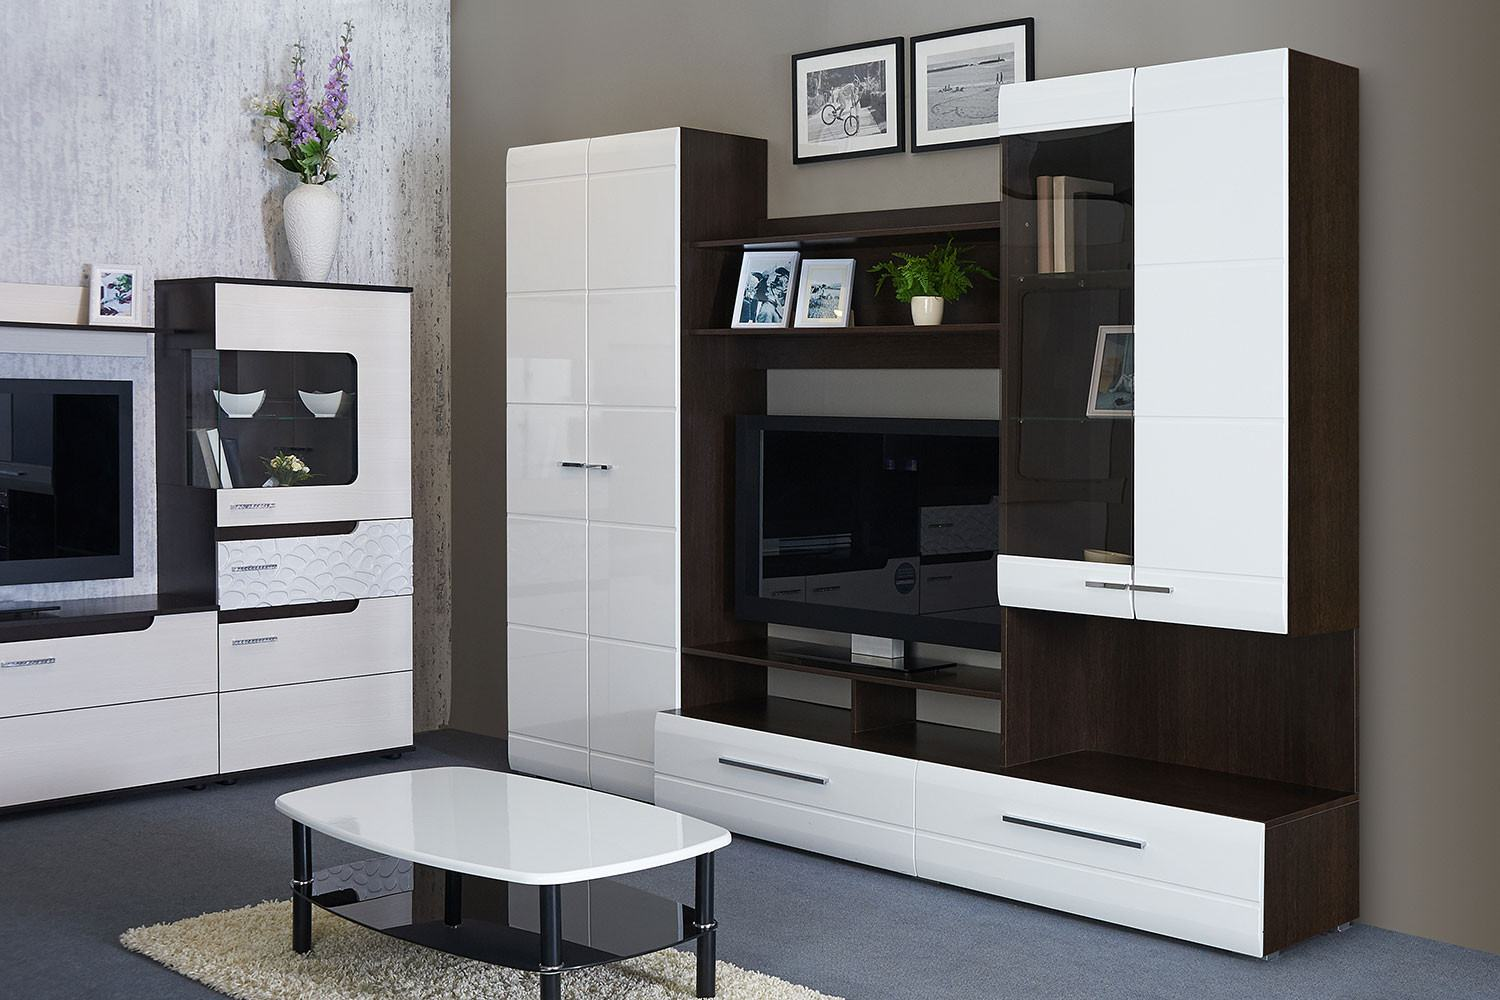 Living Room Cabinet Furniture to Add Practilcal Solutions to the Interior. White and dark combination of colors for casual interior